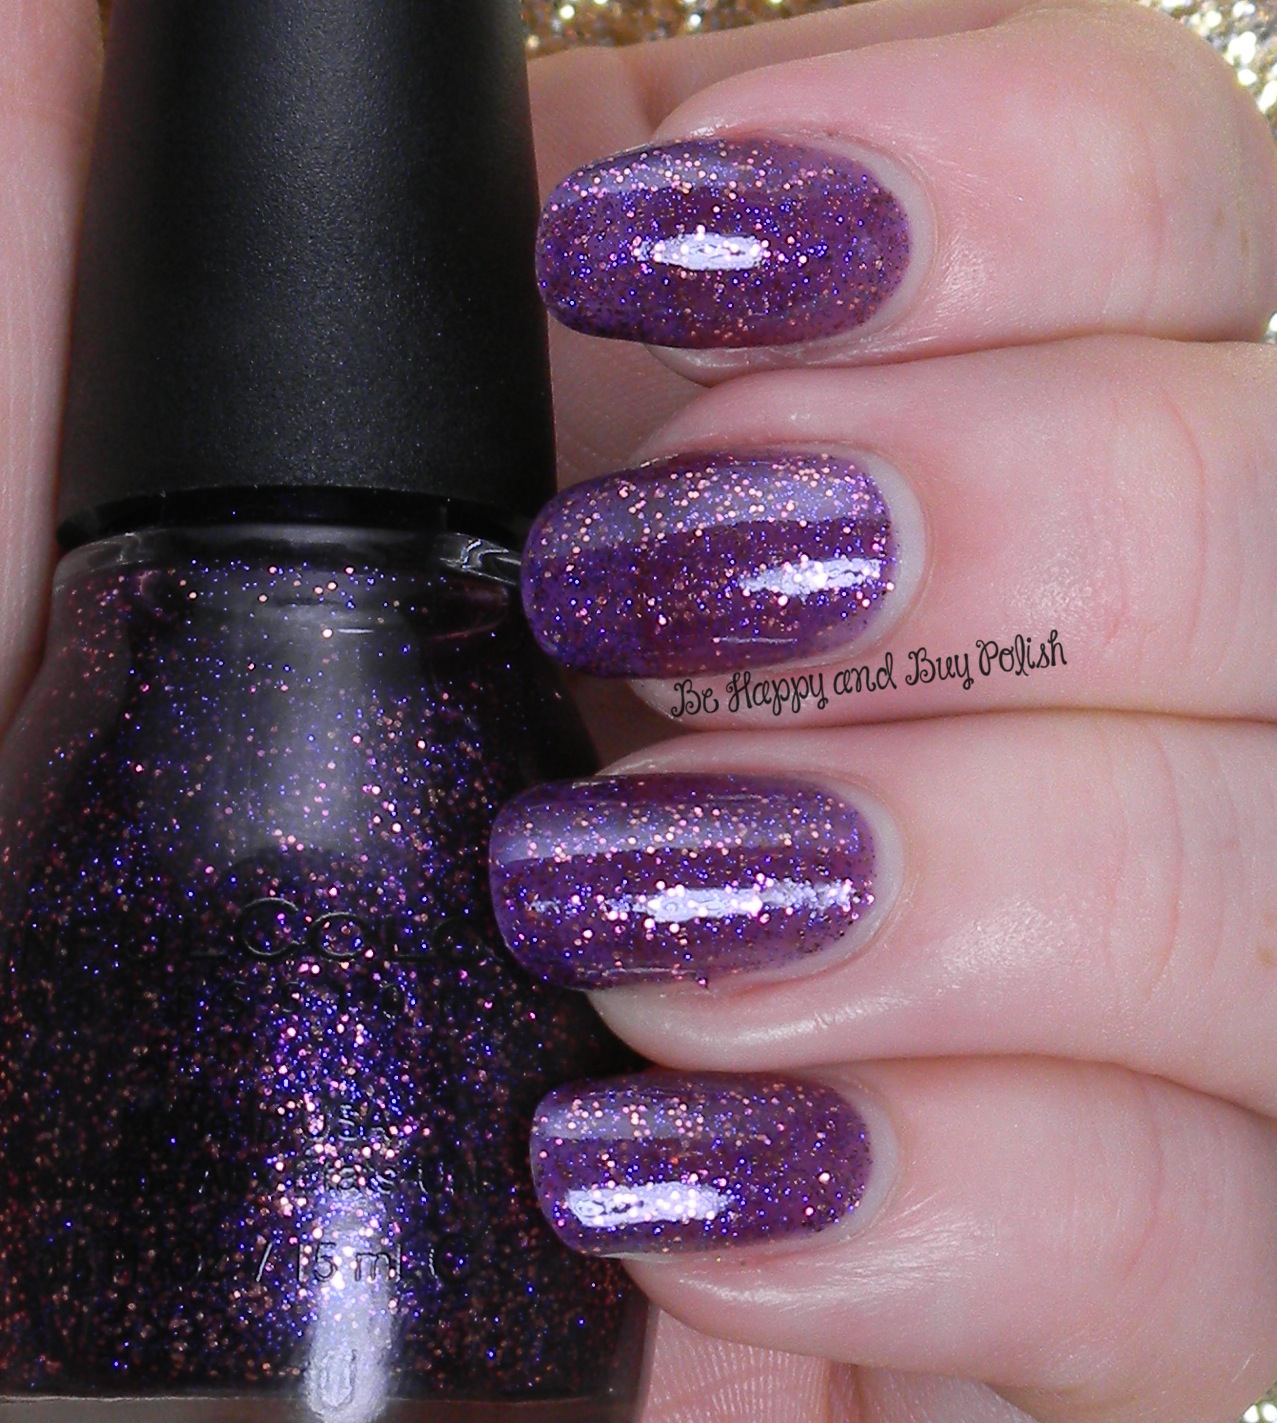 Shimmer And Sparkle Nail Polish: Sinful Colors Glitter Nail Polishes